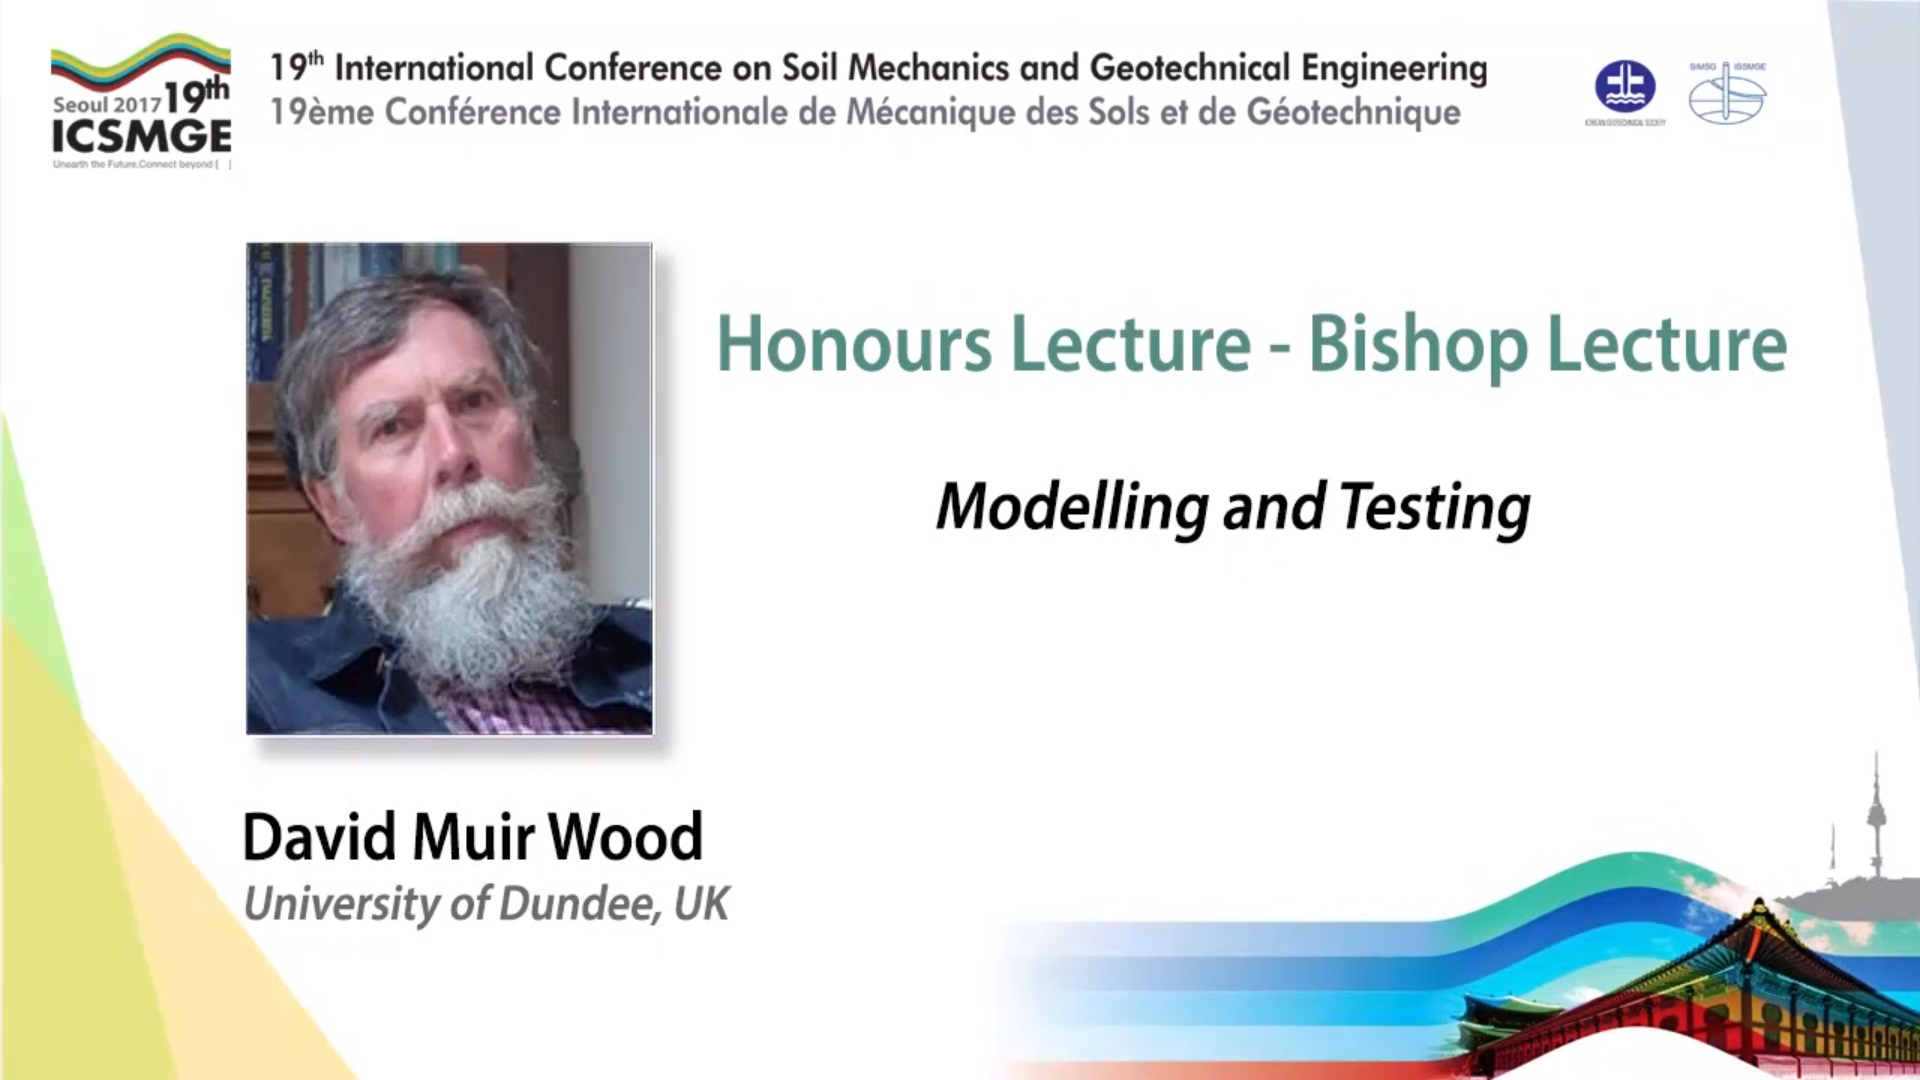 "Modelling and Testing (Bishop Lecture - 19th ICSMGE) {""category"":""honour_lecture"",""subjects"":[""Laboratory Testing"", ""Numberical & Constitutive Modelling""],""number"":""ICSMGE102"",""instructors"":[""David Muir Wood""]}"